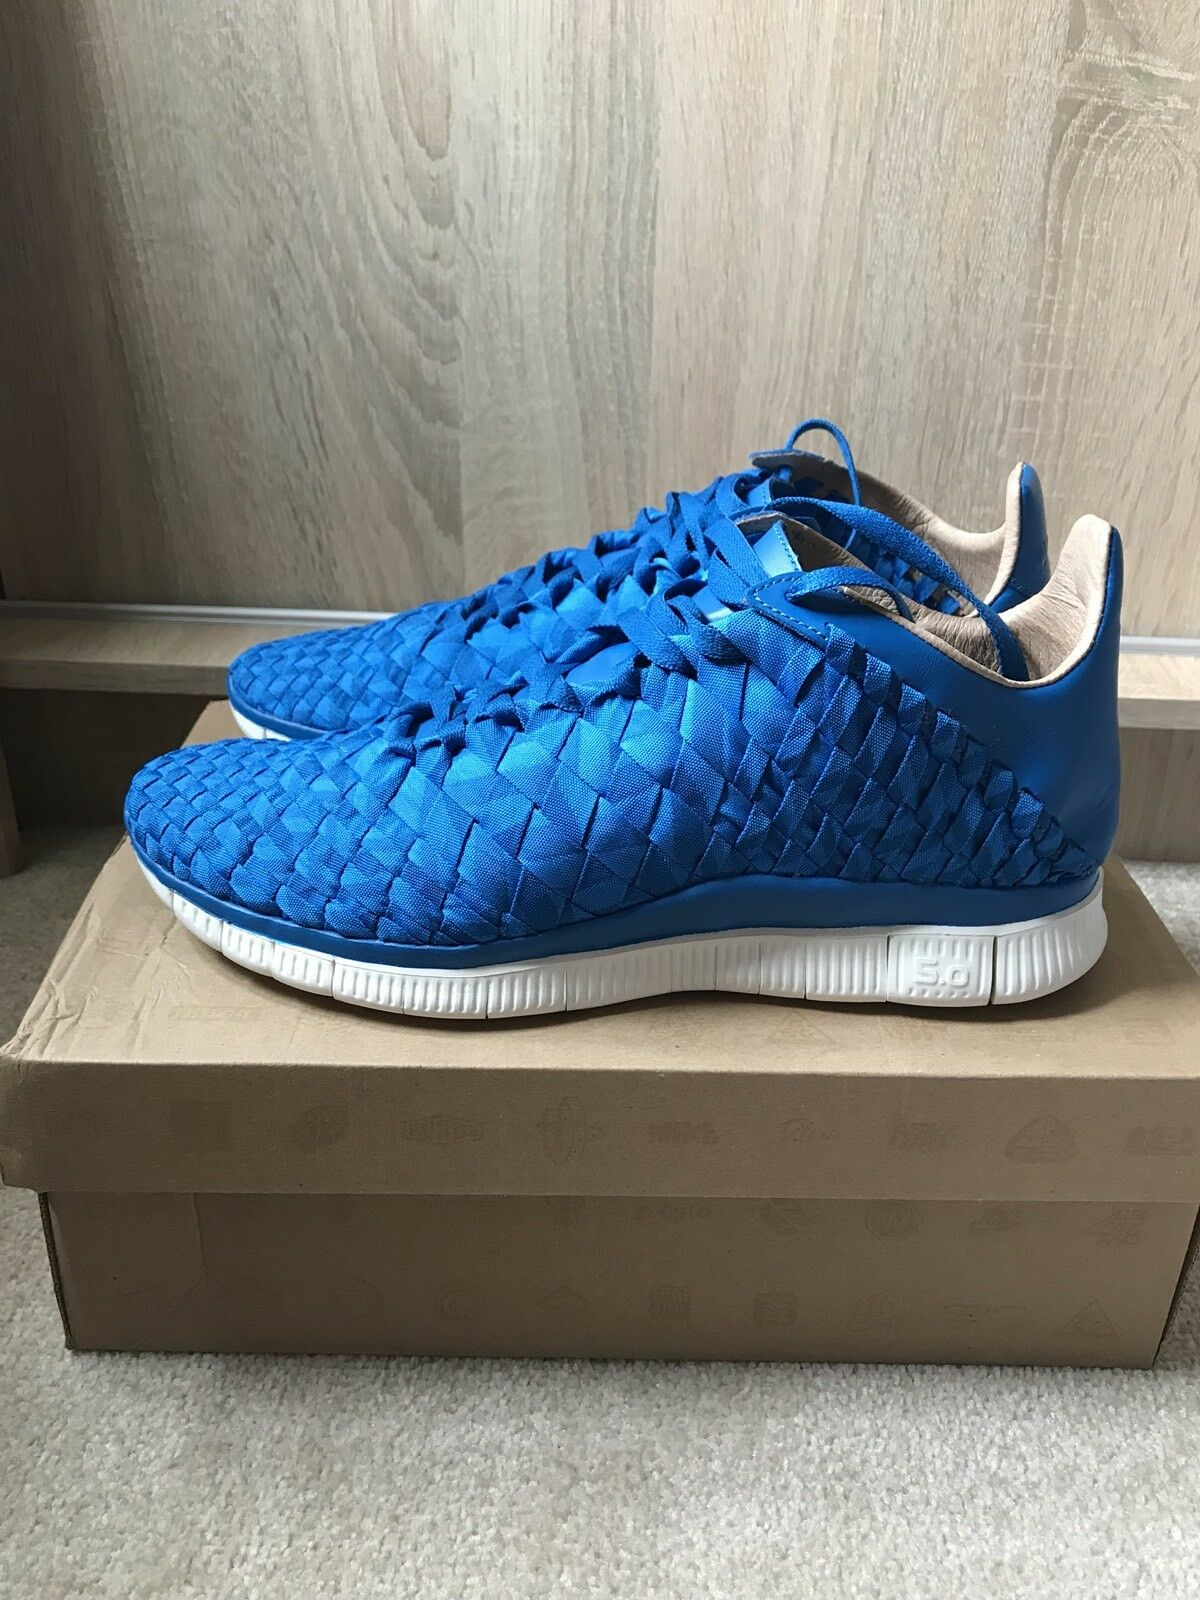 Nike Free Inneva Woven SP - Us 11 - Tier Zero - Photo Blue - NRG